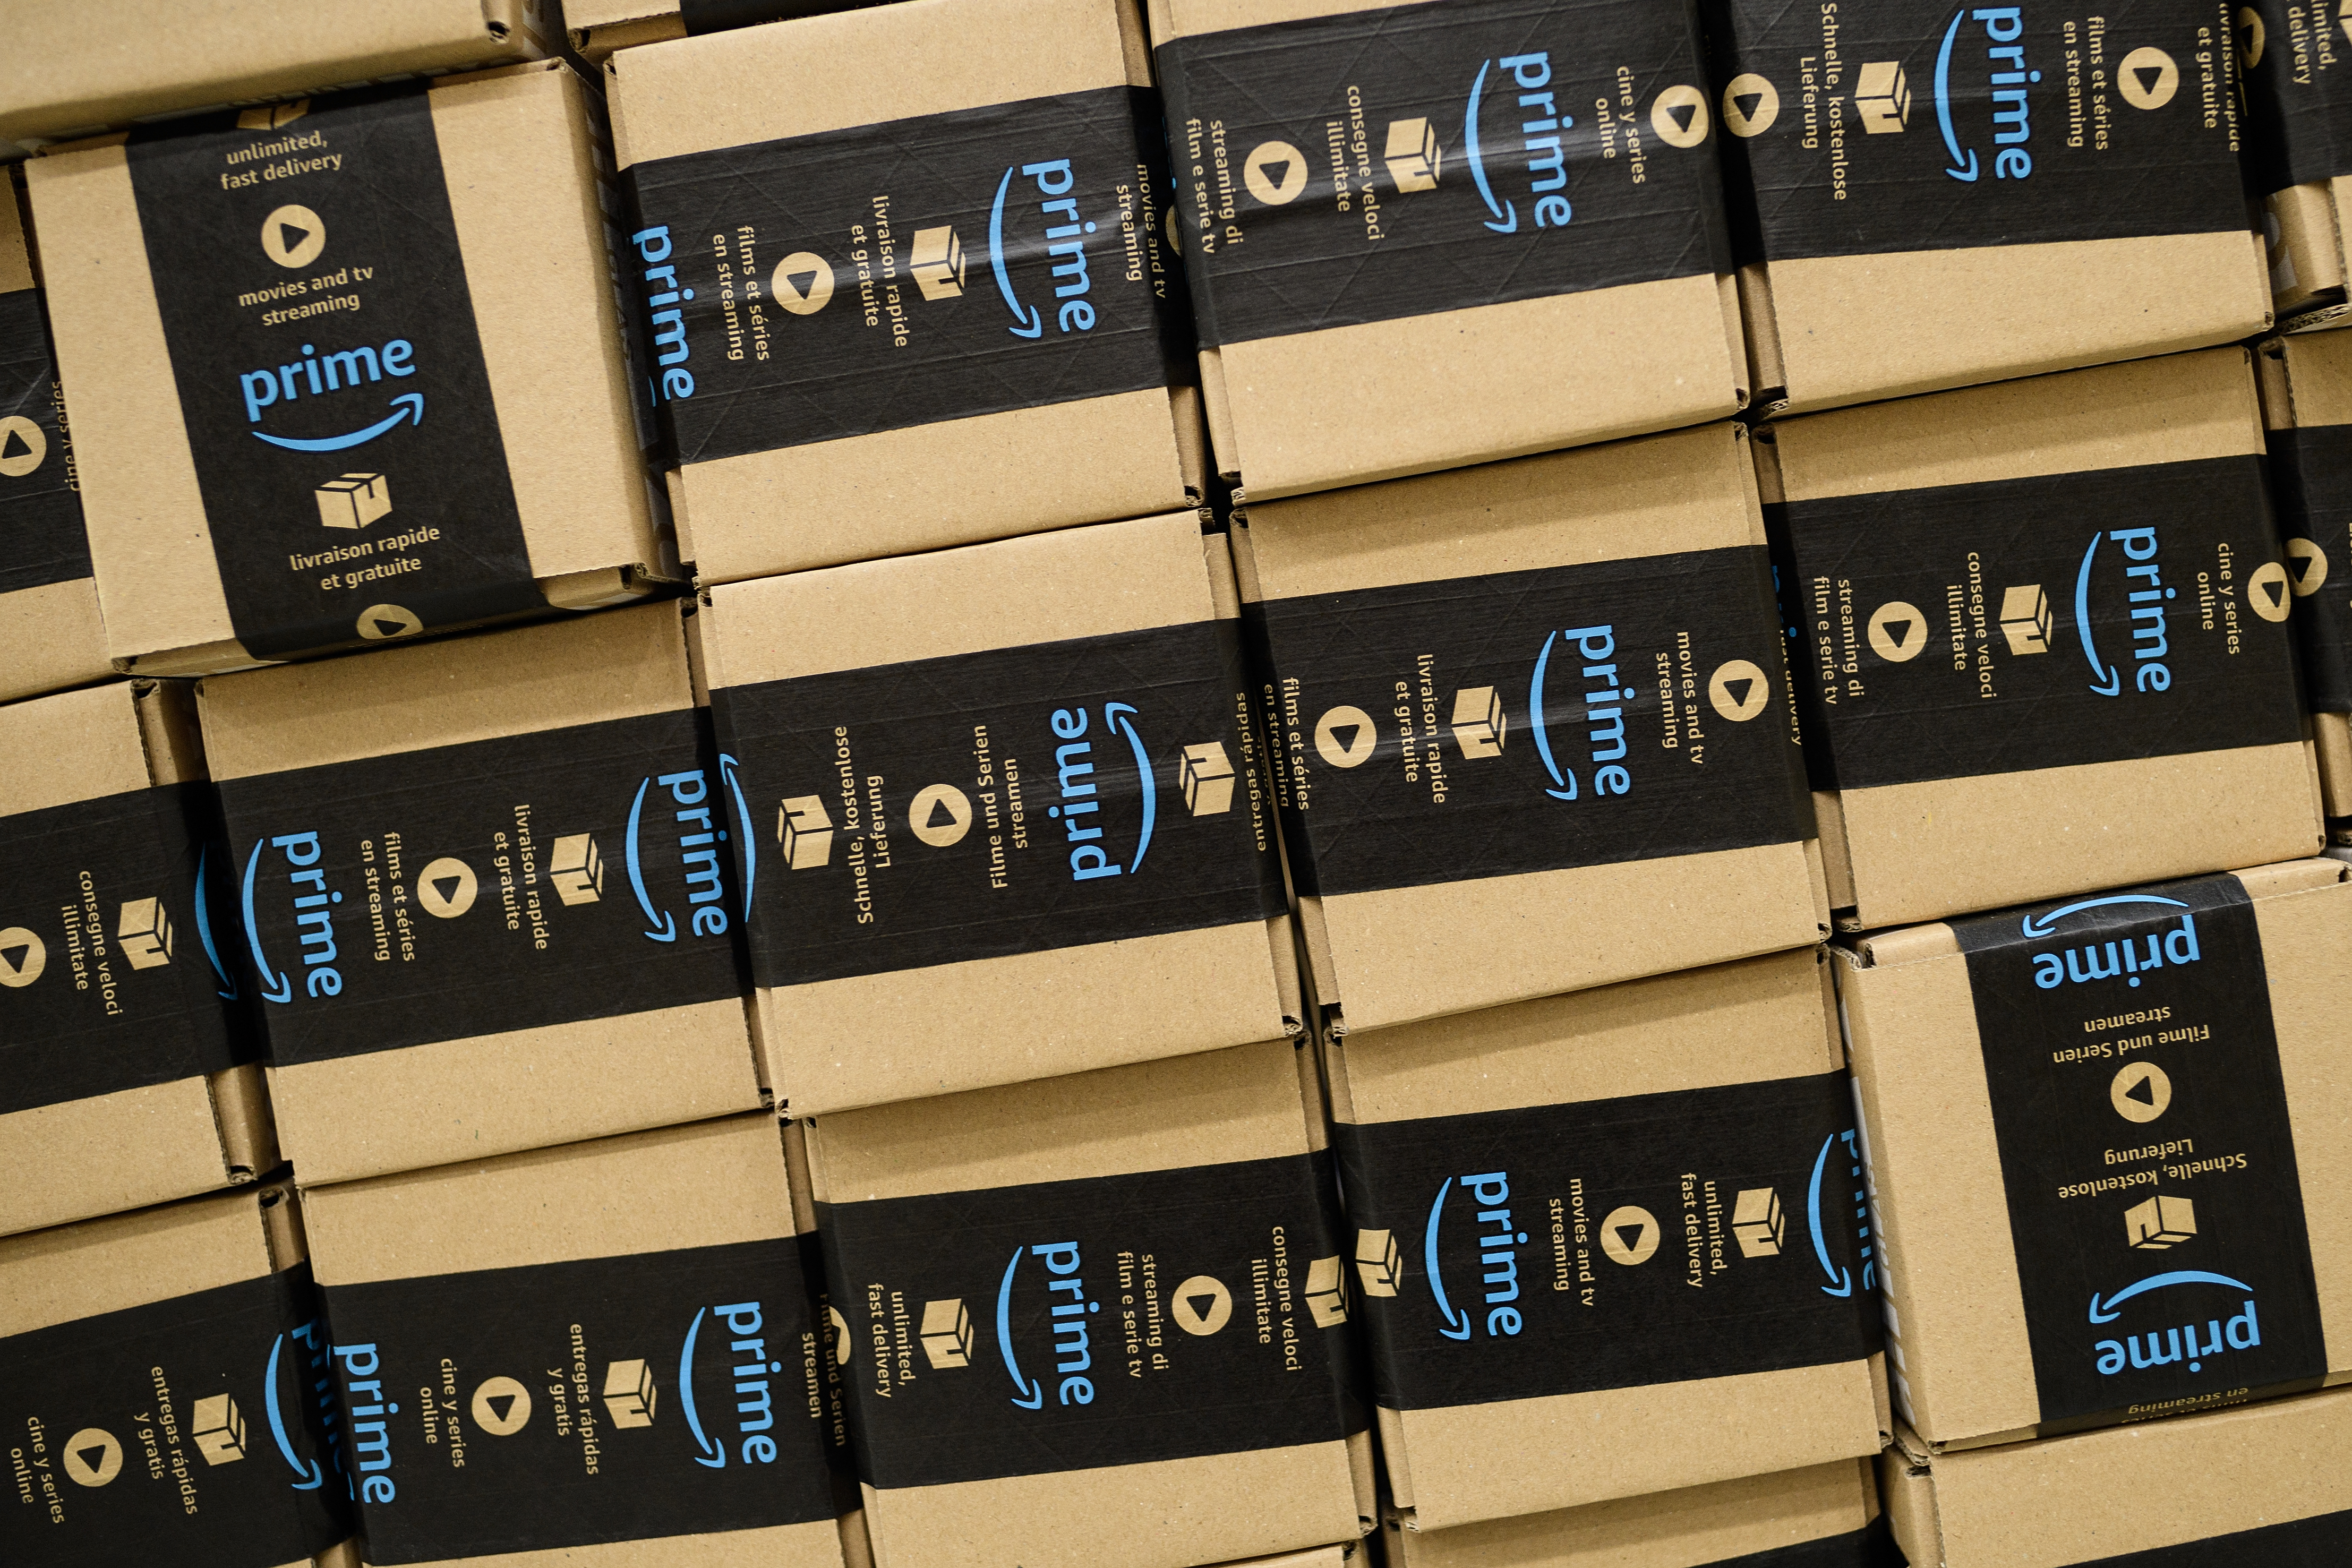 Stacked boxes marked with Amazon Prime logos.